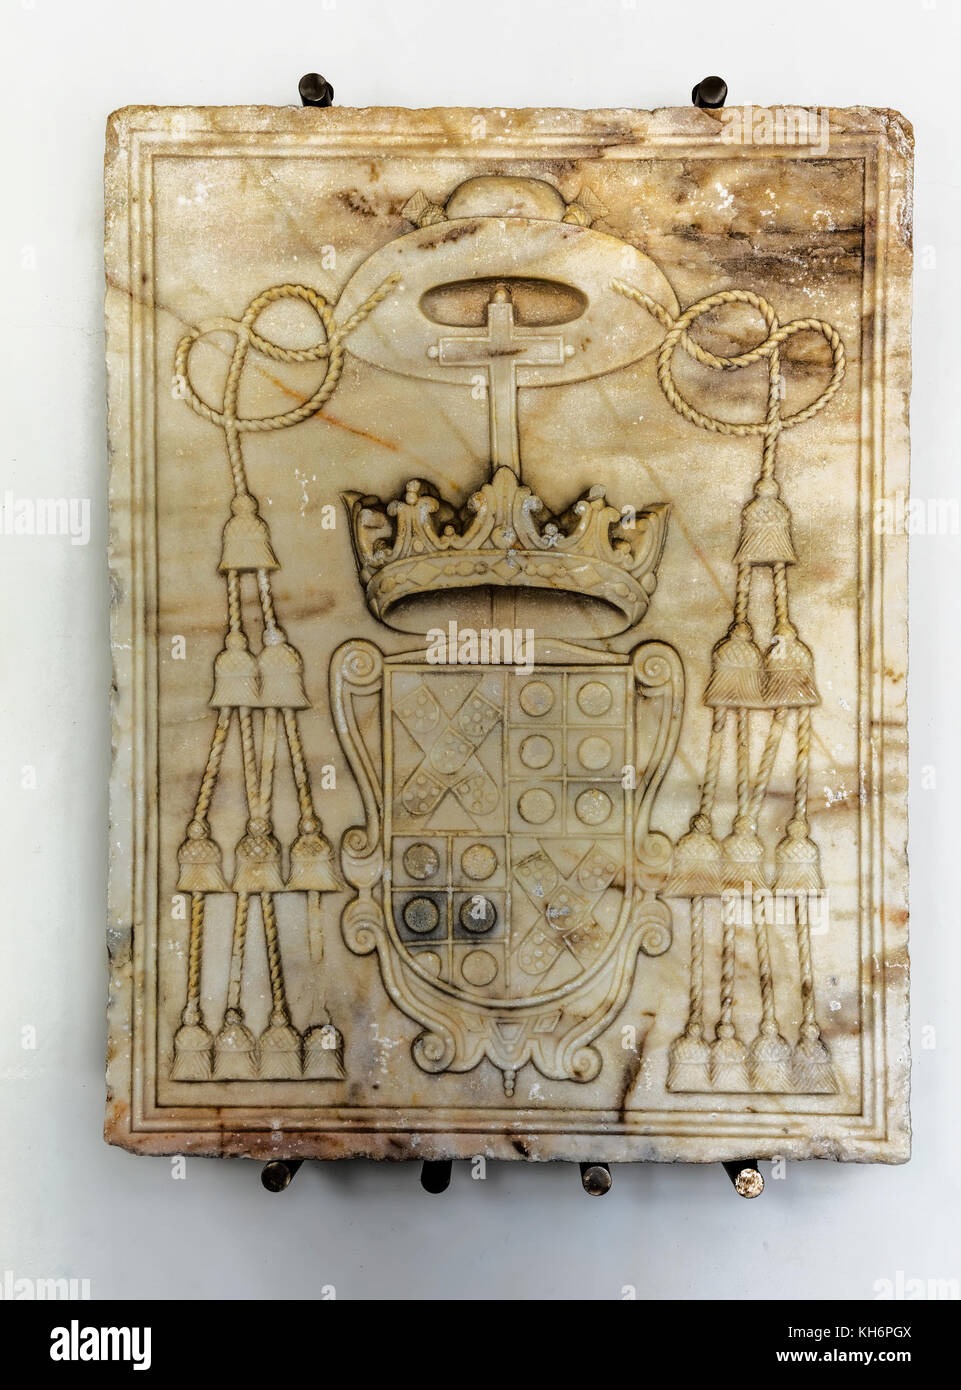 Evora Museum. Marble Coat of Arms of Don Jose de Melo, 17th century. - Stock Image